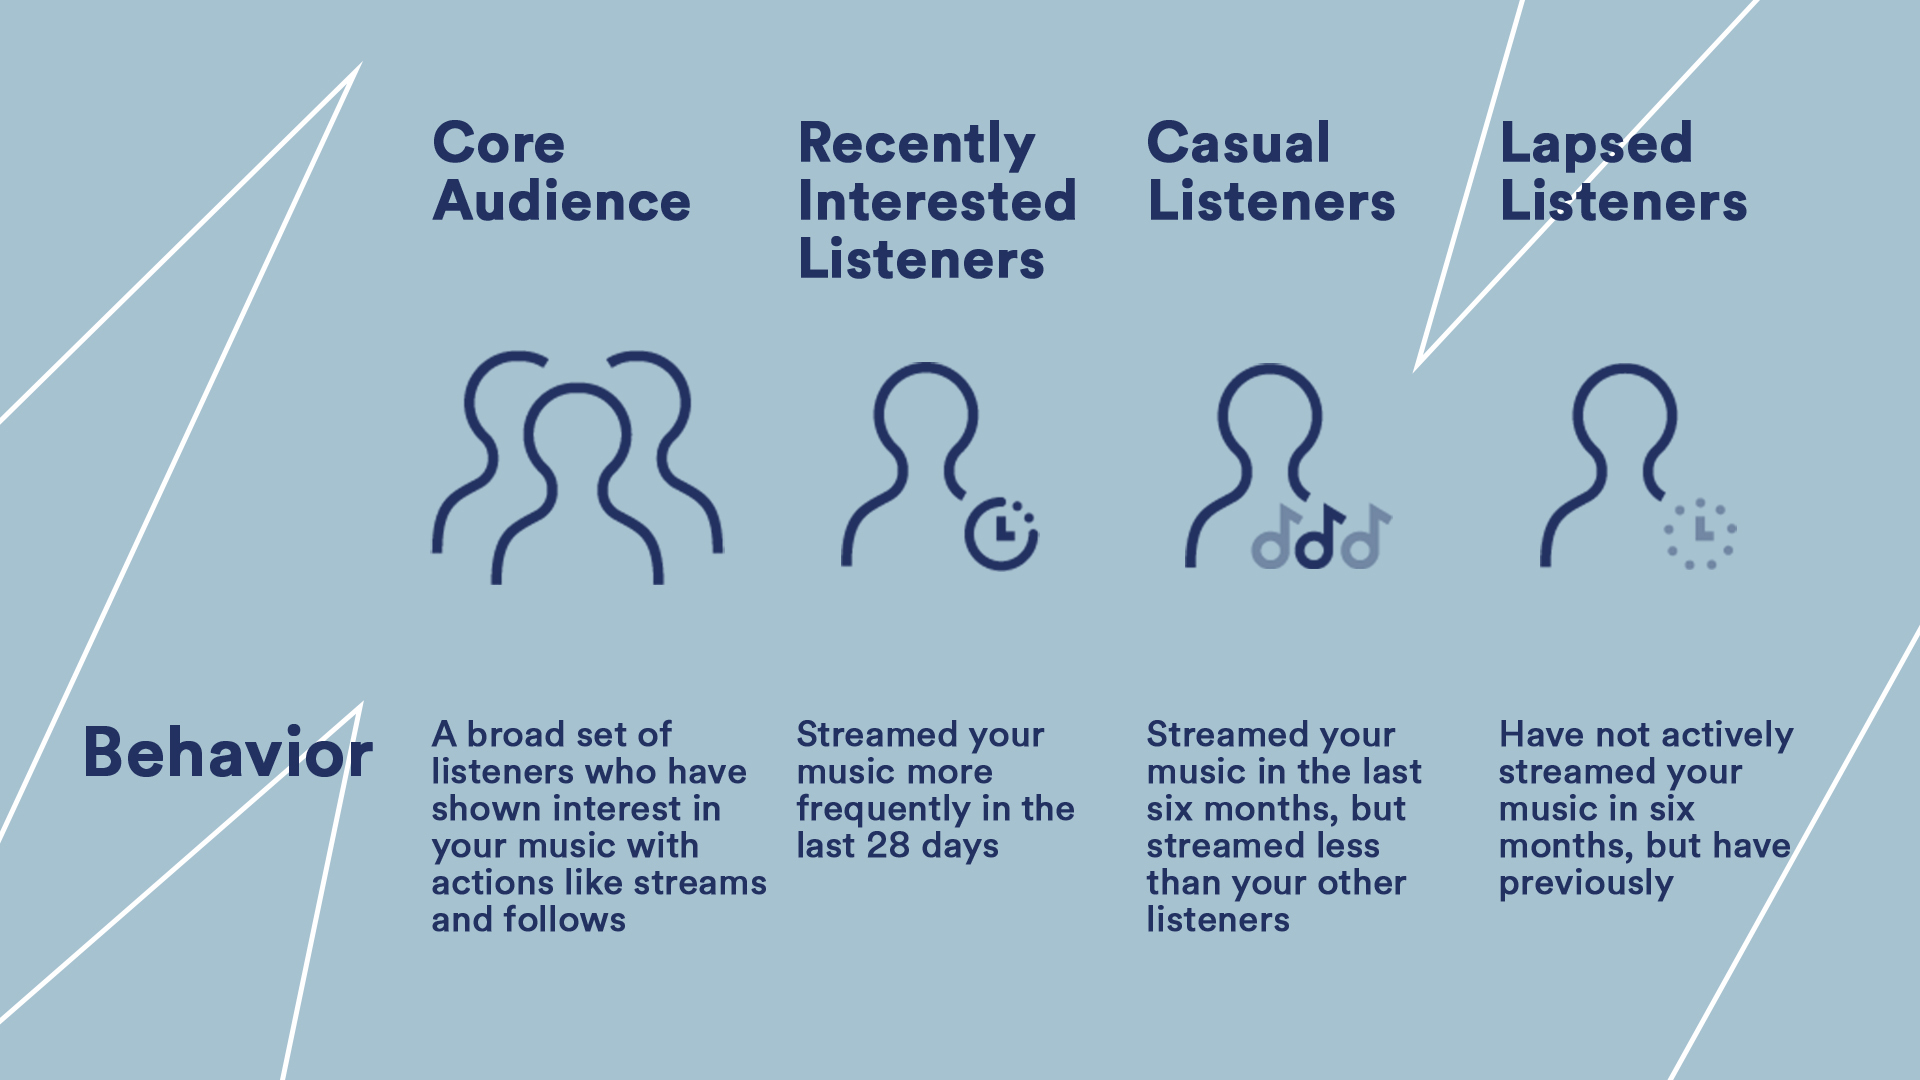 Types of listeners and their behaviors